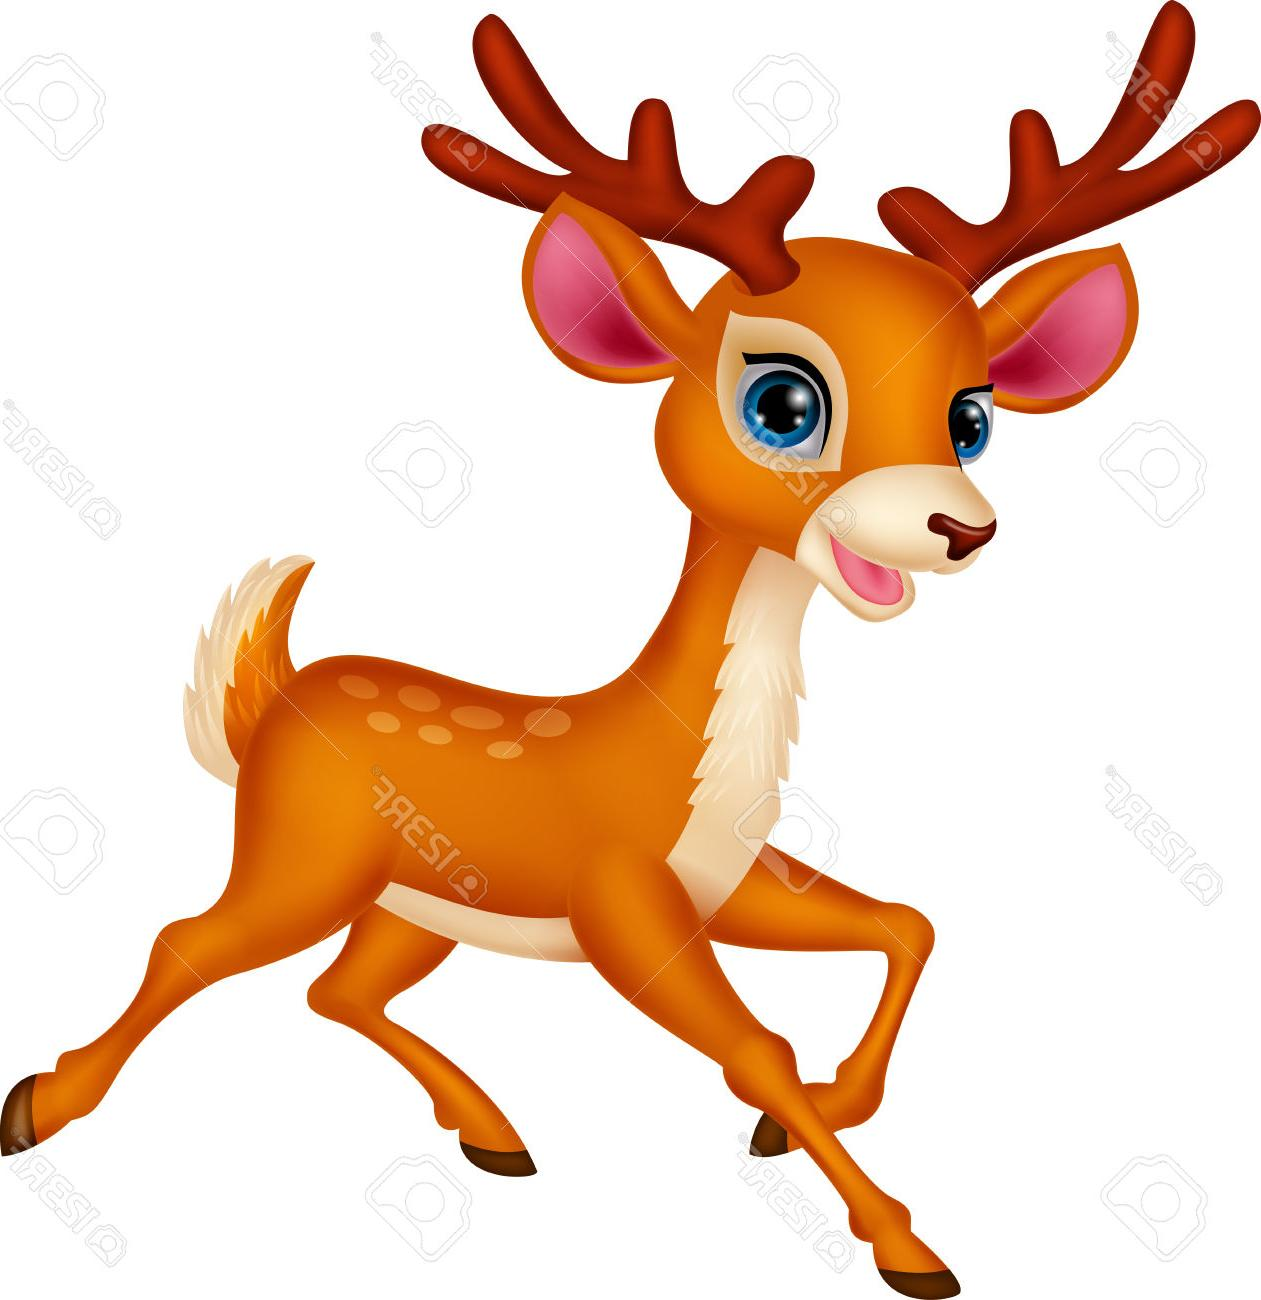 Baby buck head clipart picture freeuse Baby Deer Clipart | Free download best Baby Deer Clipart on ... picture freeuse